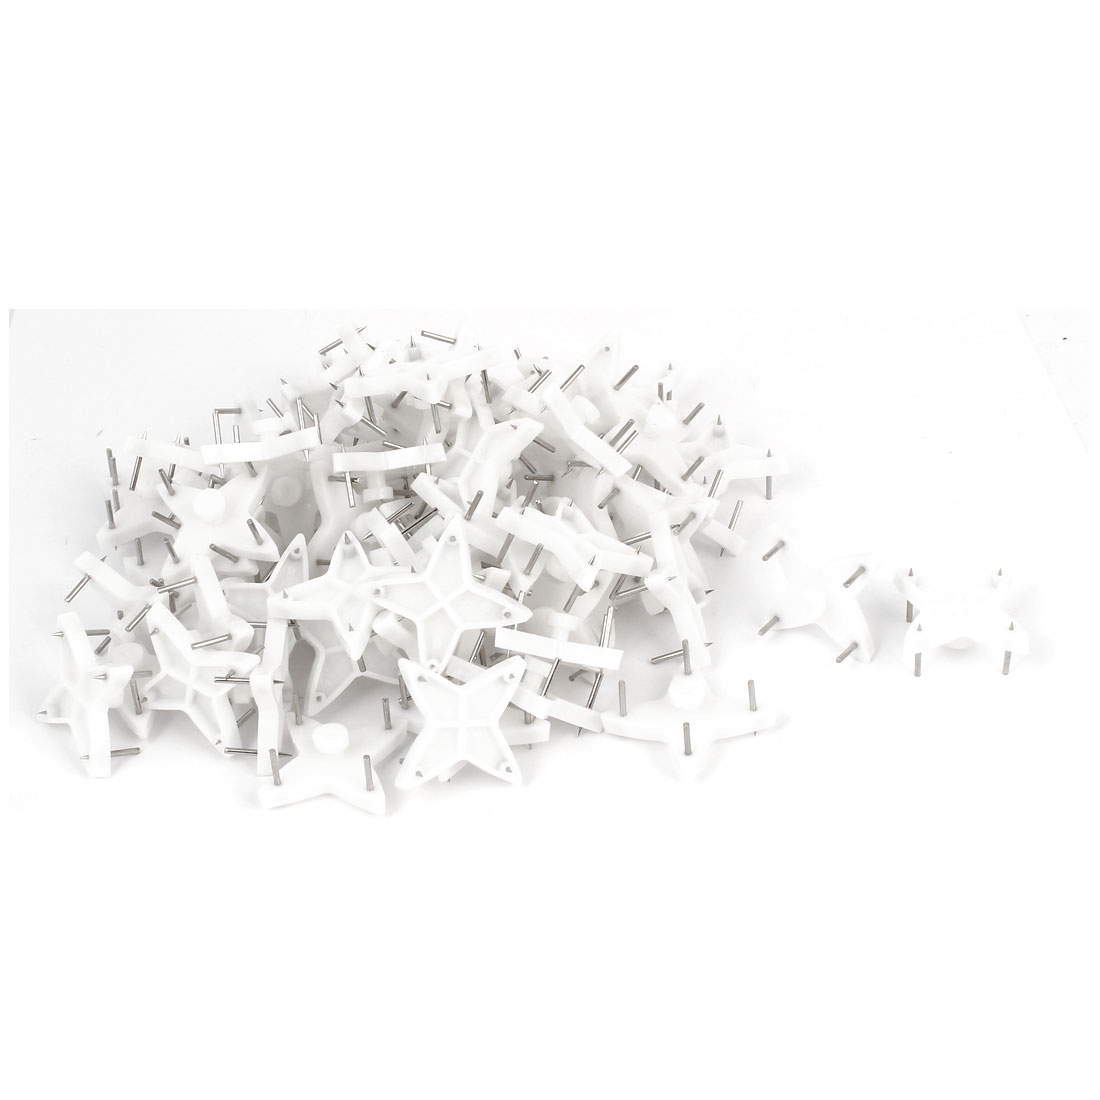 Home-Plastic-Wall-Hook-Hanger-Seamless-Nail-100pcs-for-Picture-Photo-Frame